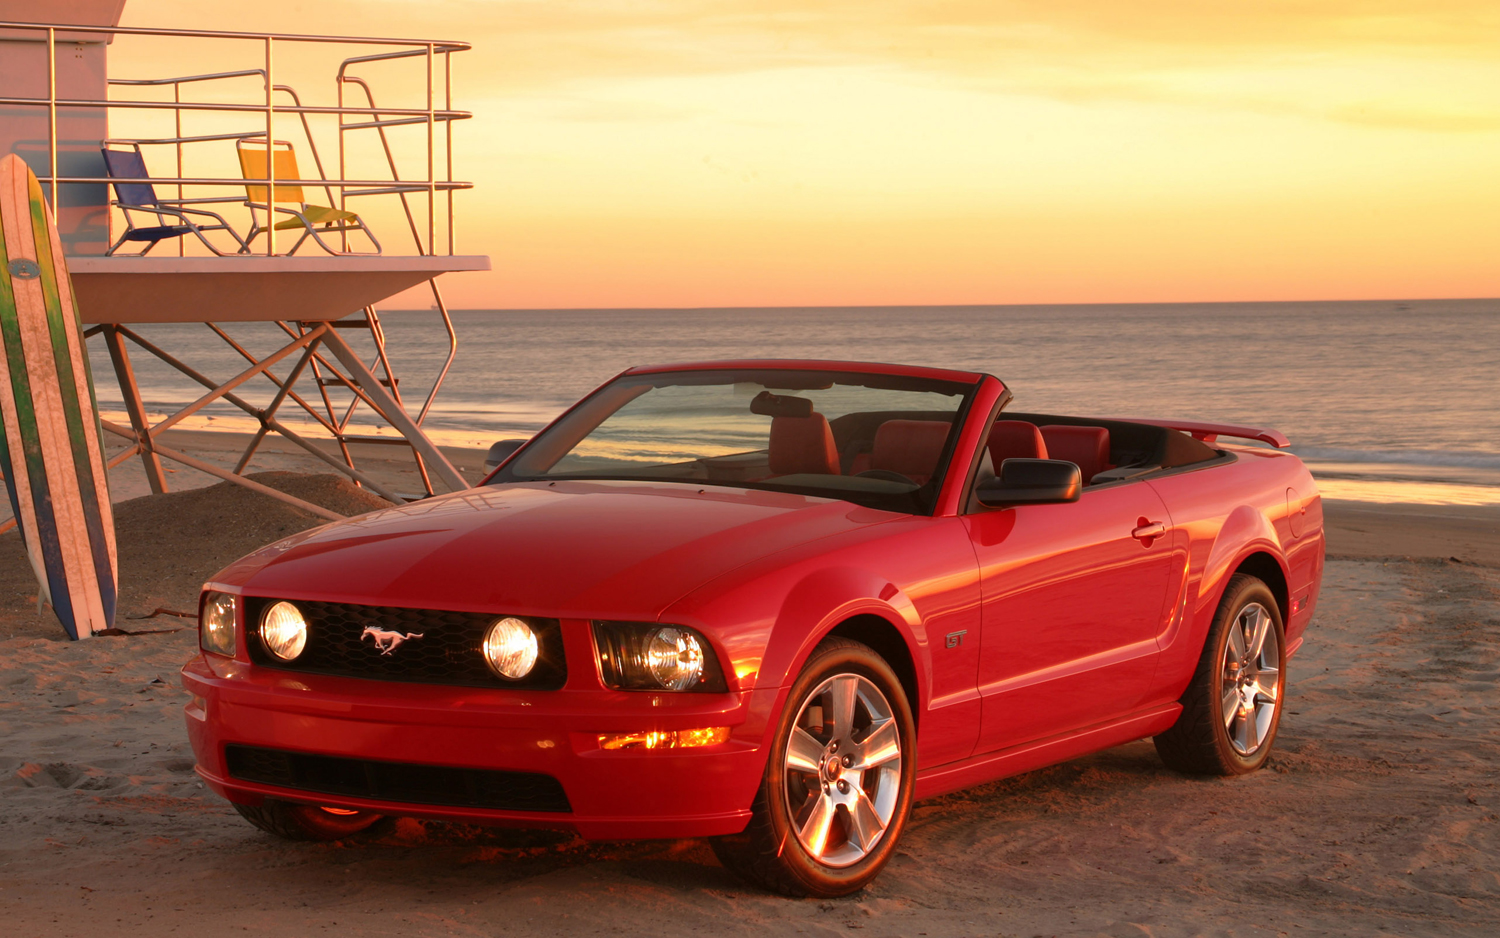 2005-Ford-Mustang-convertible-front-three-quarter-beach